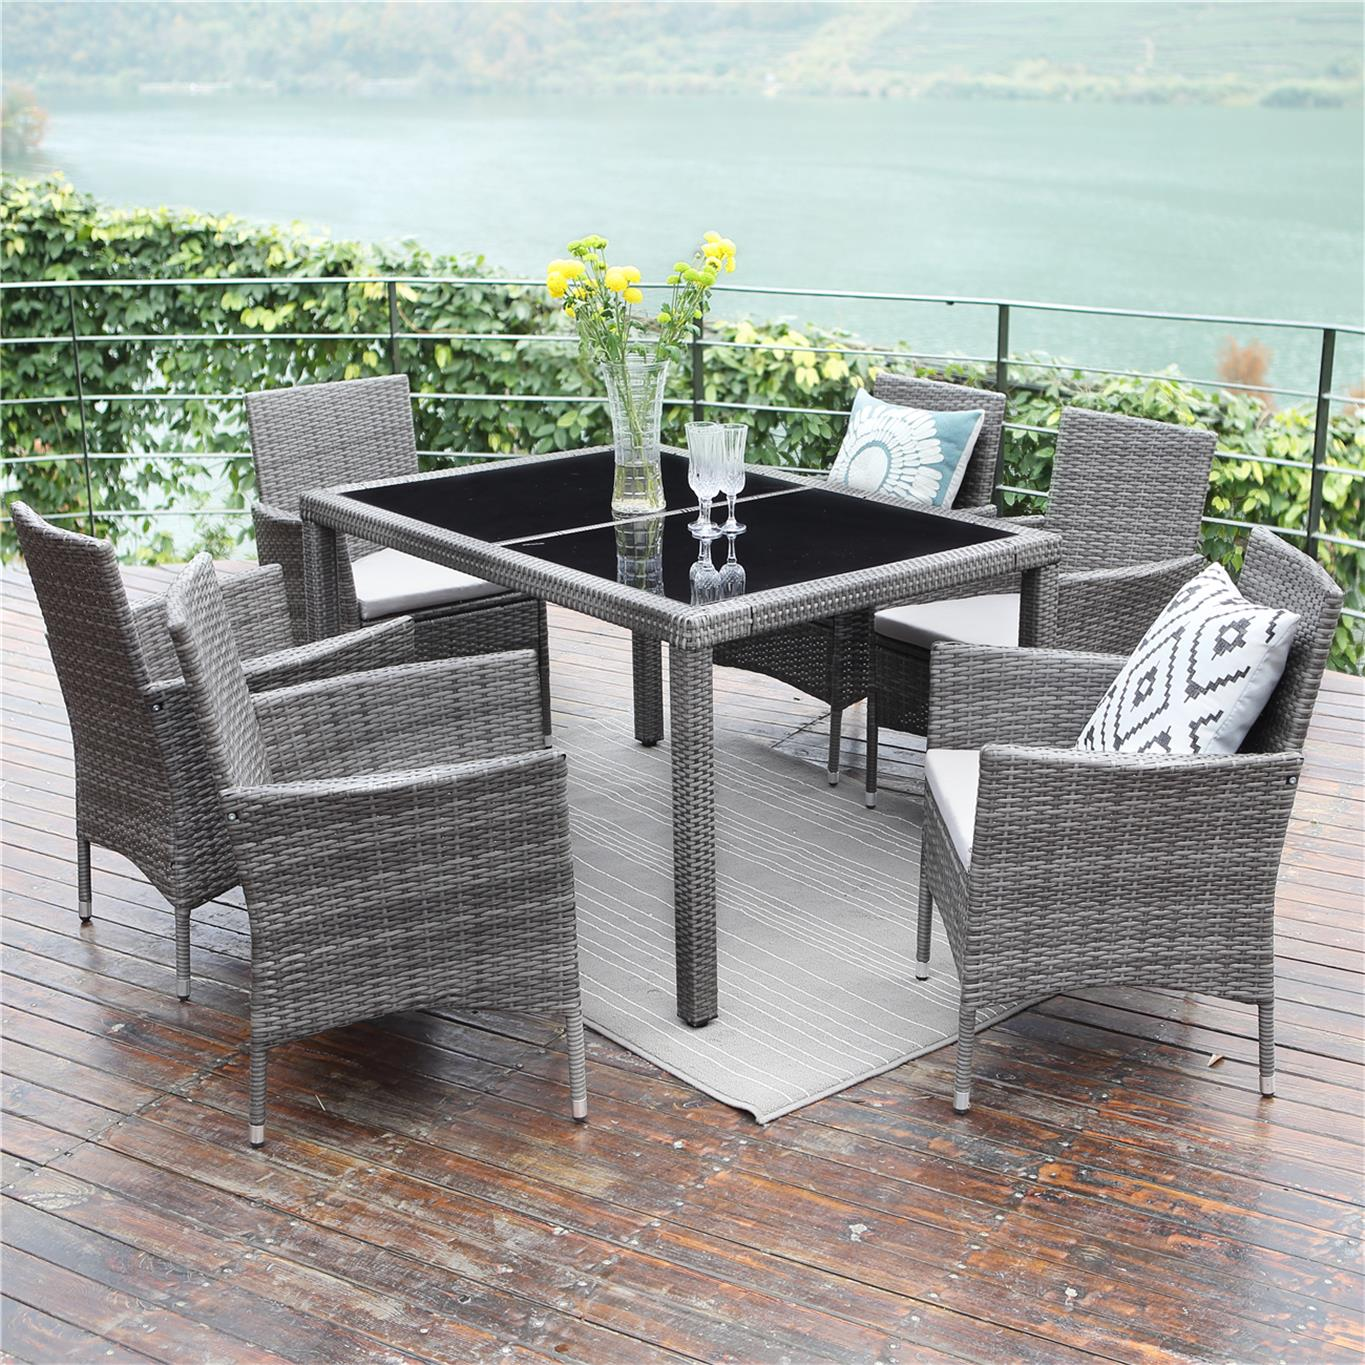 7 Piece Patio Wicker Dining Set,Wisteria Lane Outdoor Rattan Dining Furniture Glass Table Cushioned Chair,Grey